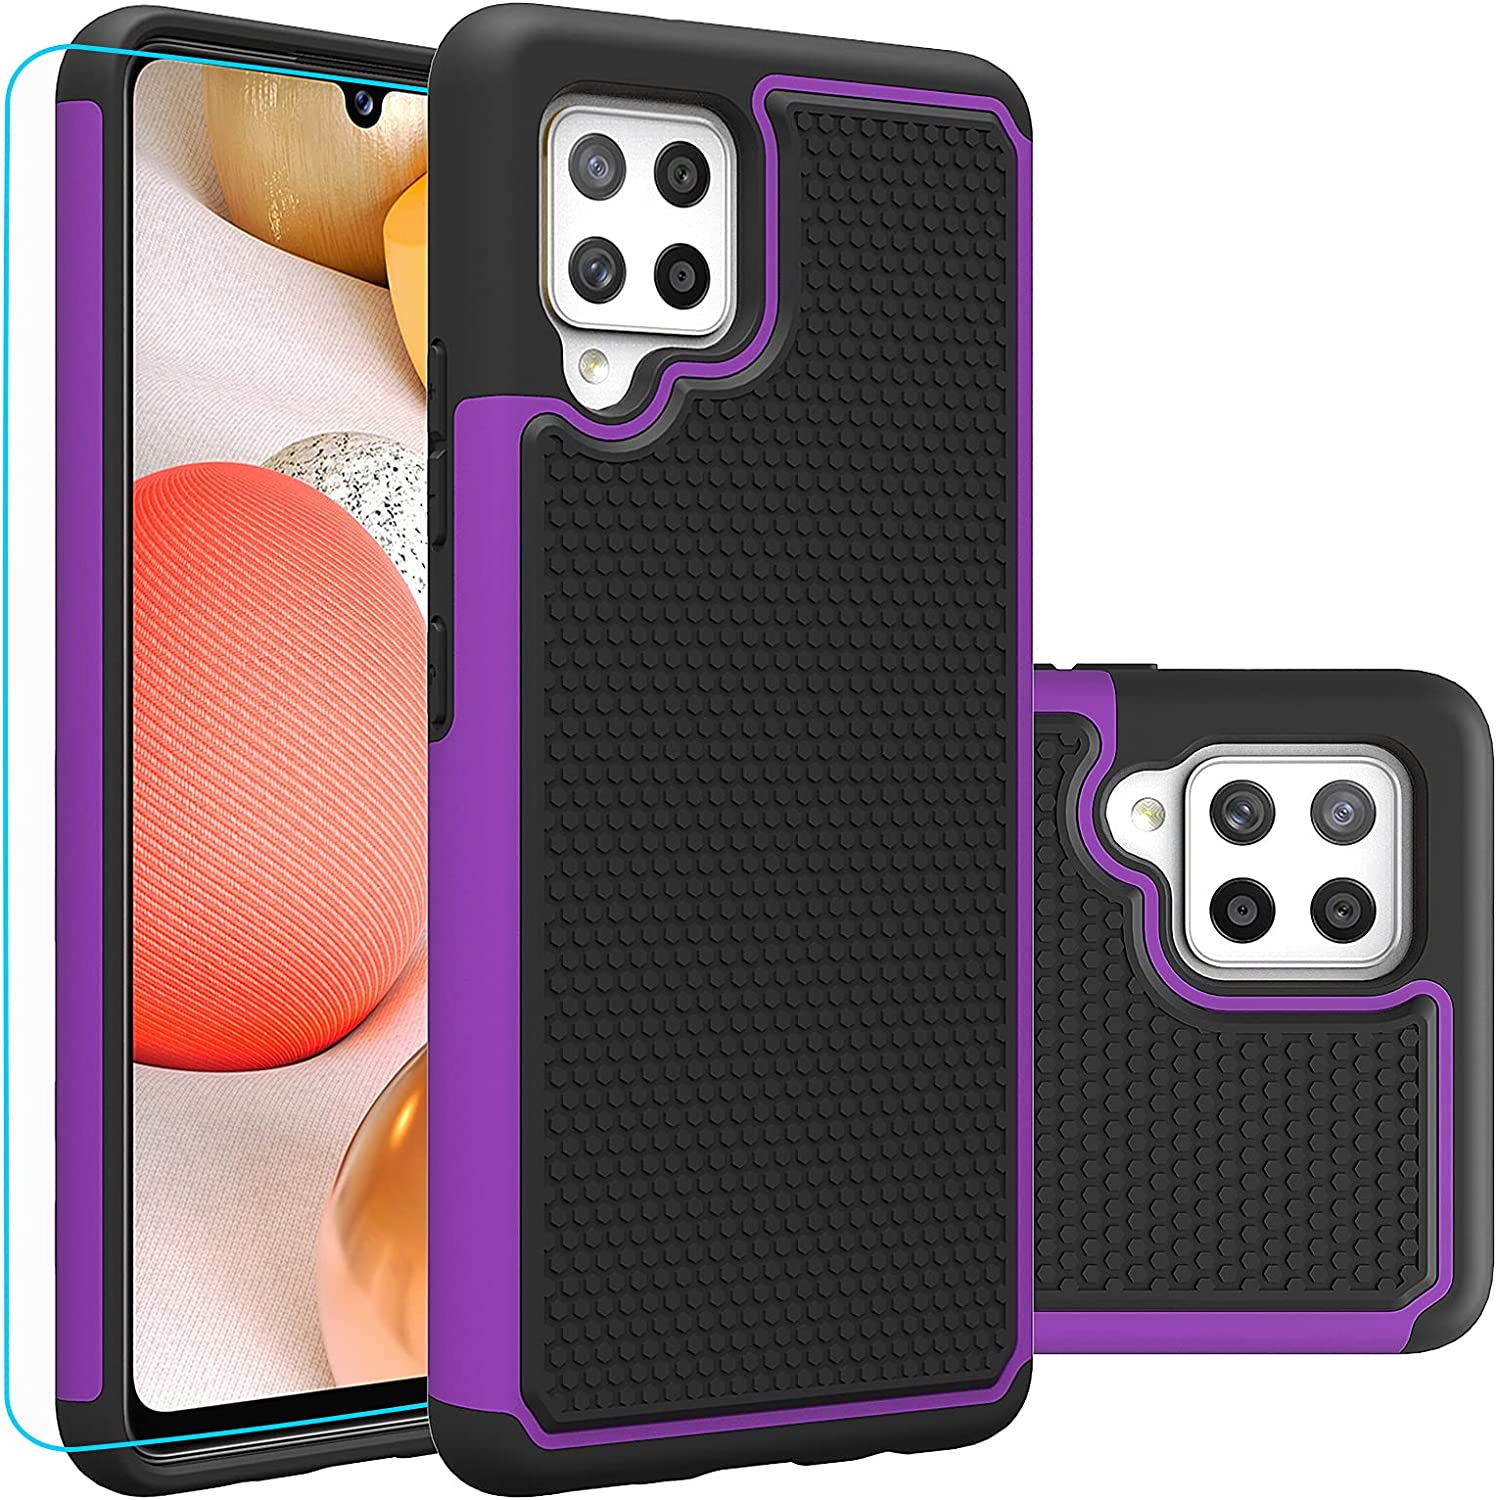 Samsung A42 5G Case, Galaxy A42 5G Case, with HD Screen Protector,Giner Dual Layer Heavy-Duty Military-Grade Armor Defender Protective Phone Case Cover for Samsung Galaxy A42 5G (Purple Armor)